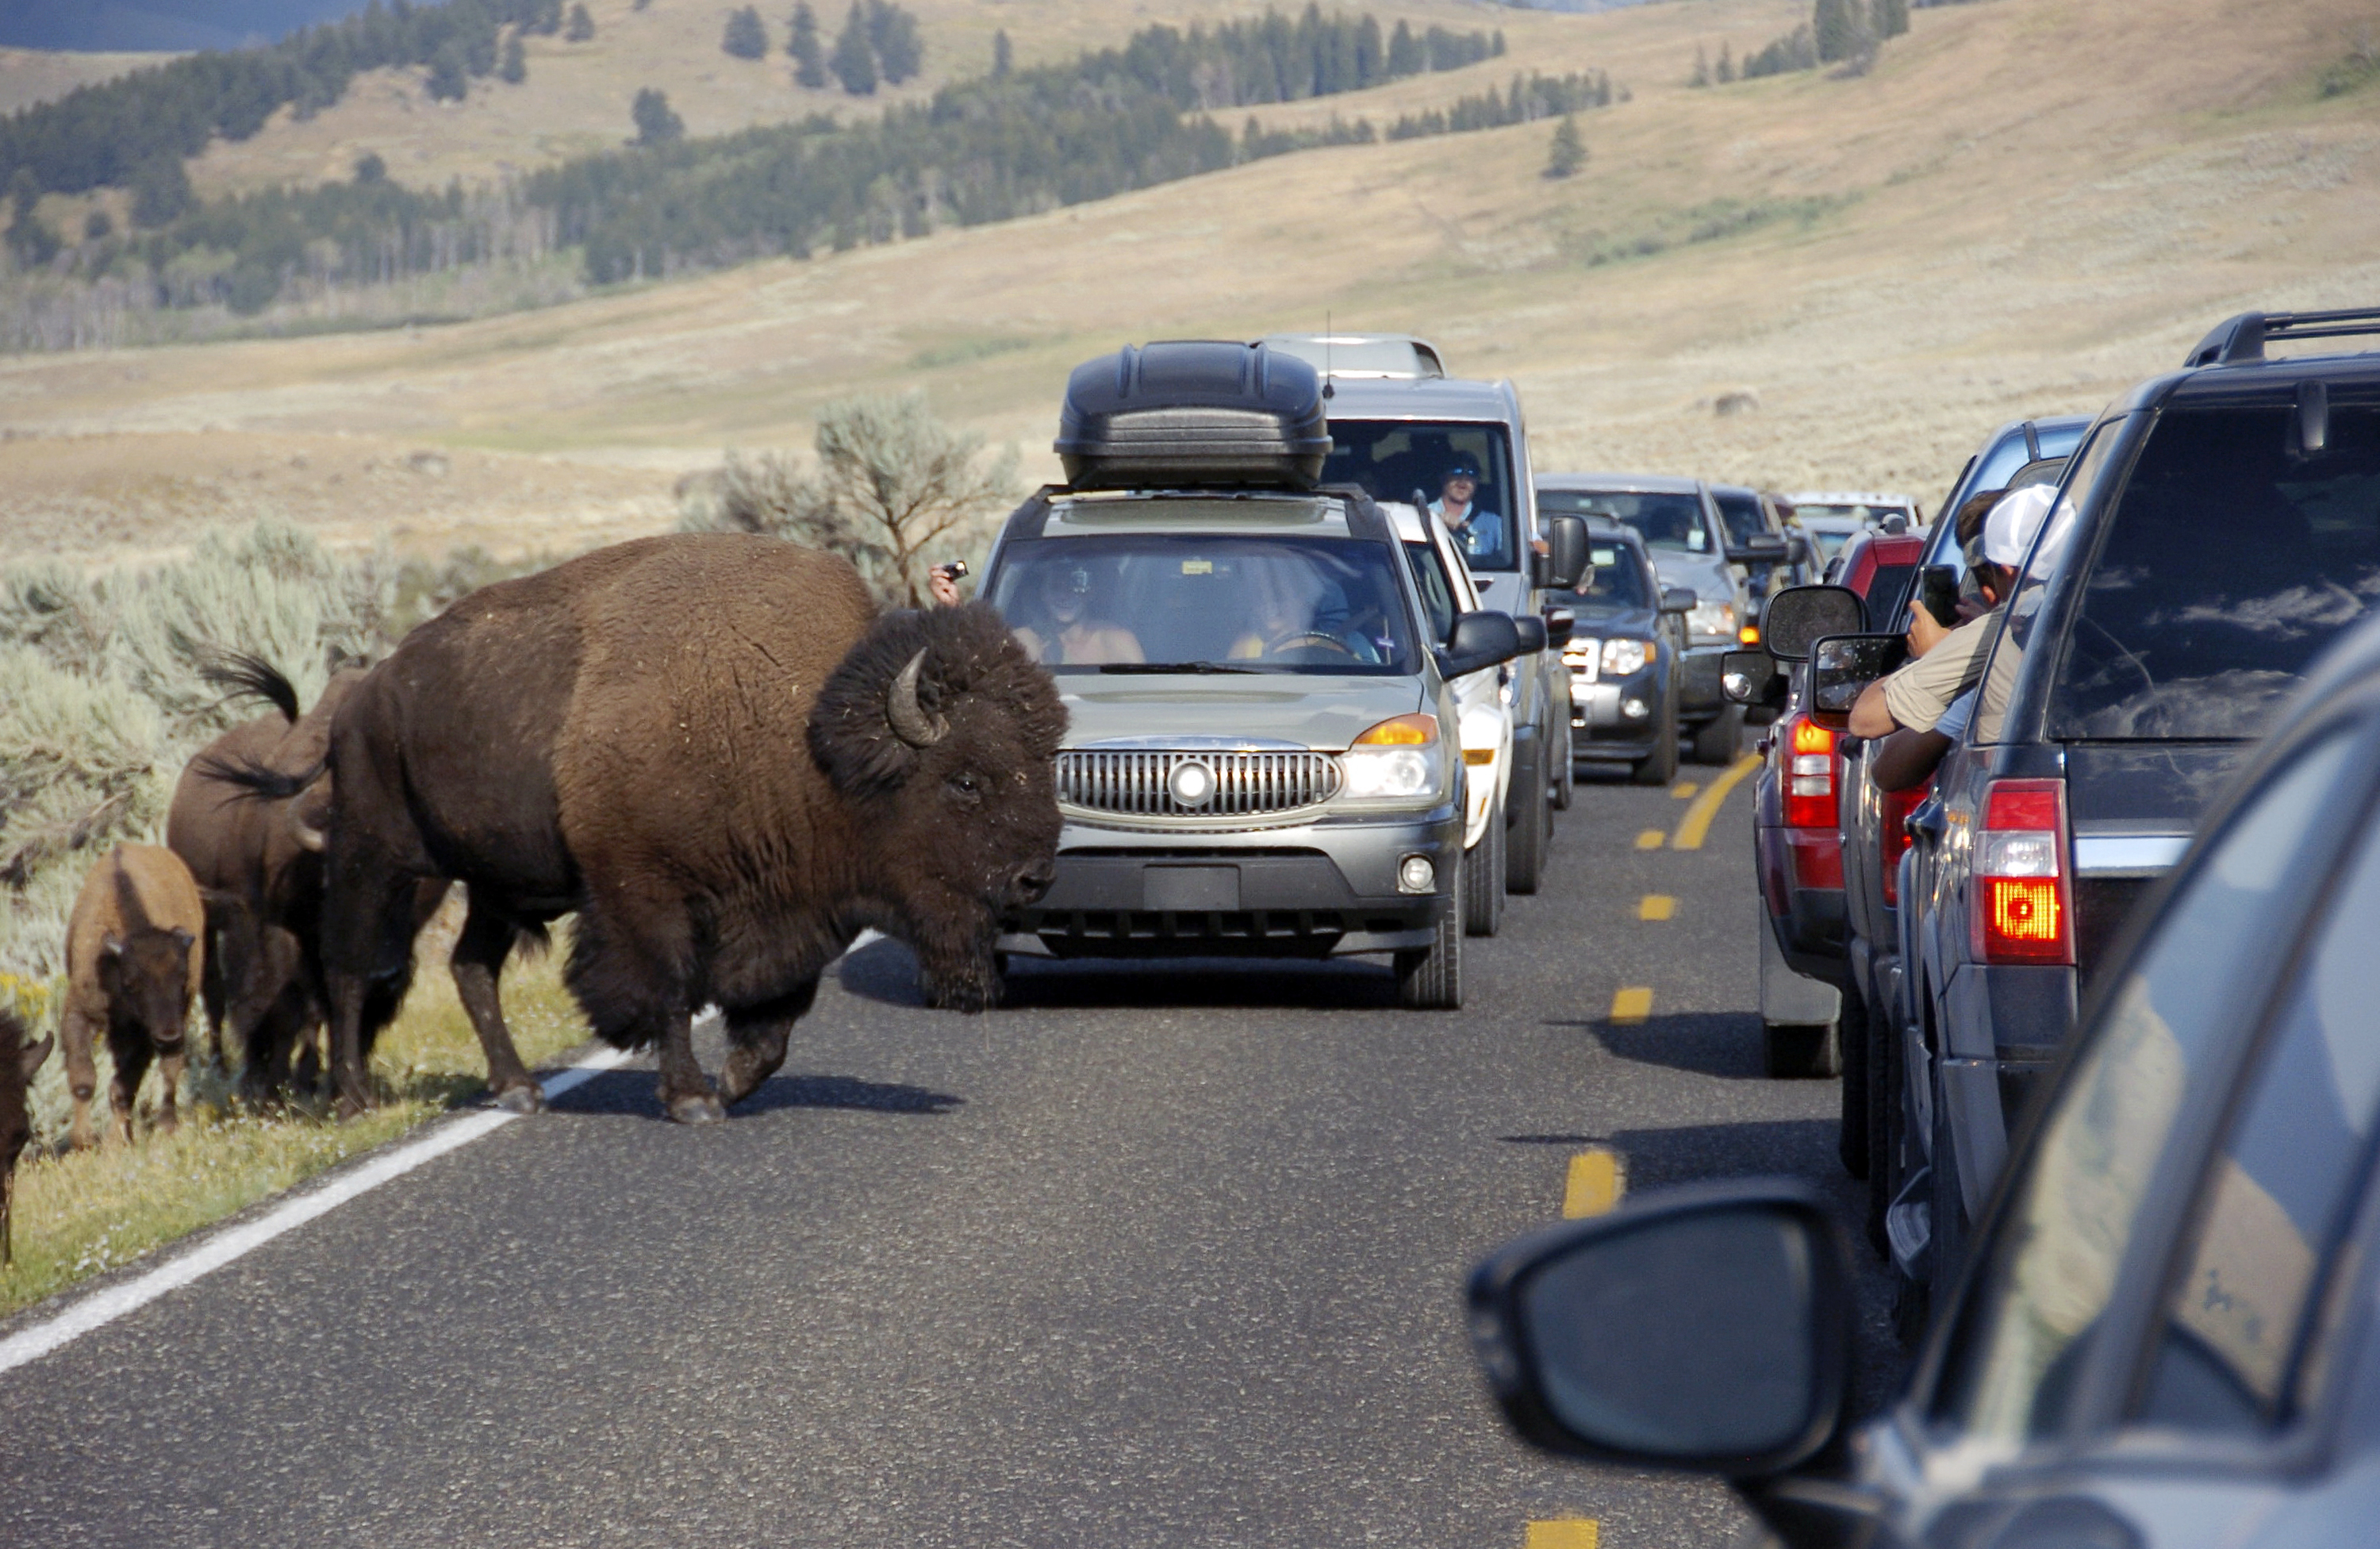 Photo: Bison Family Amid Massive Traffic Jam In Yellowstone National Park